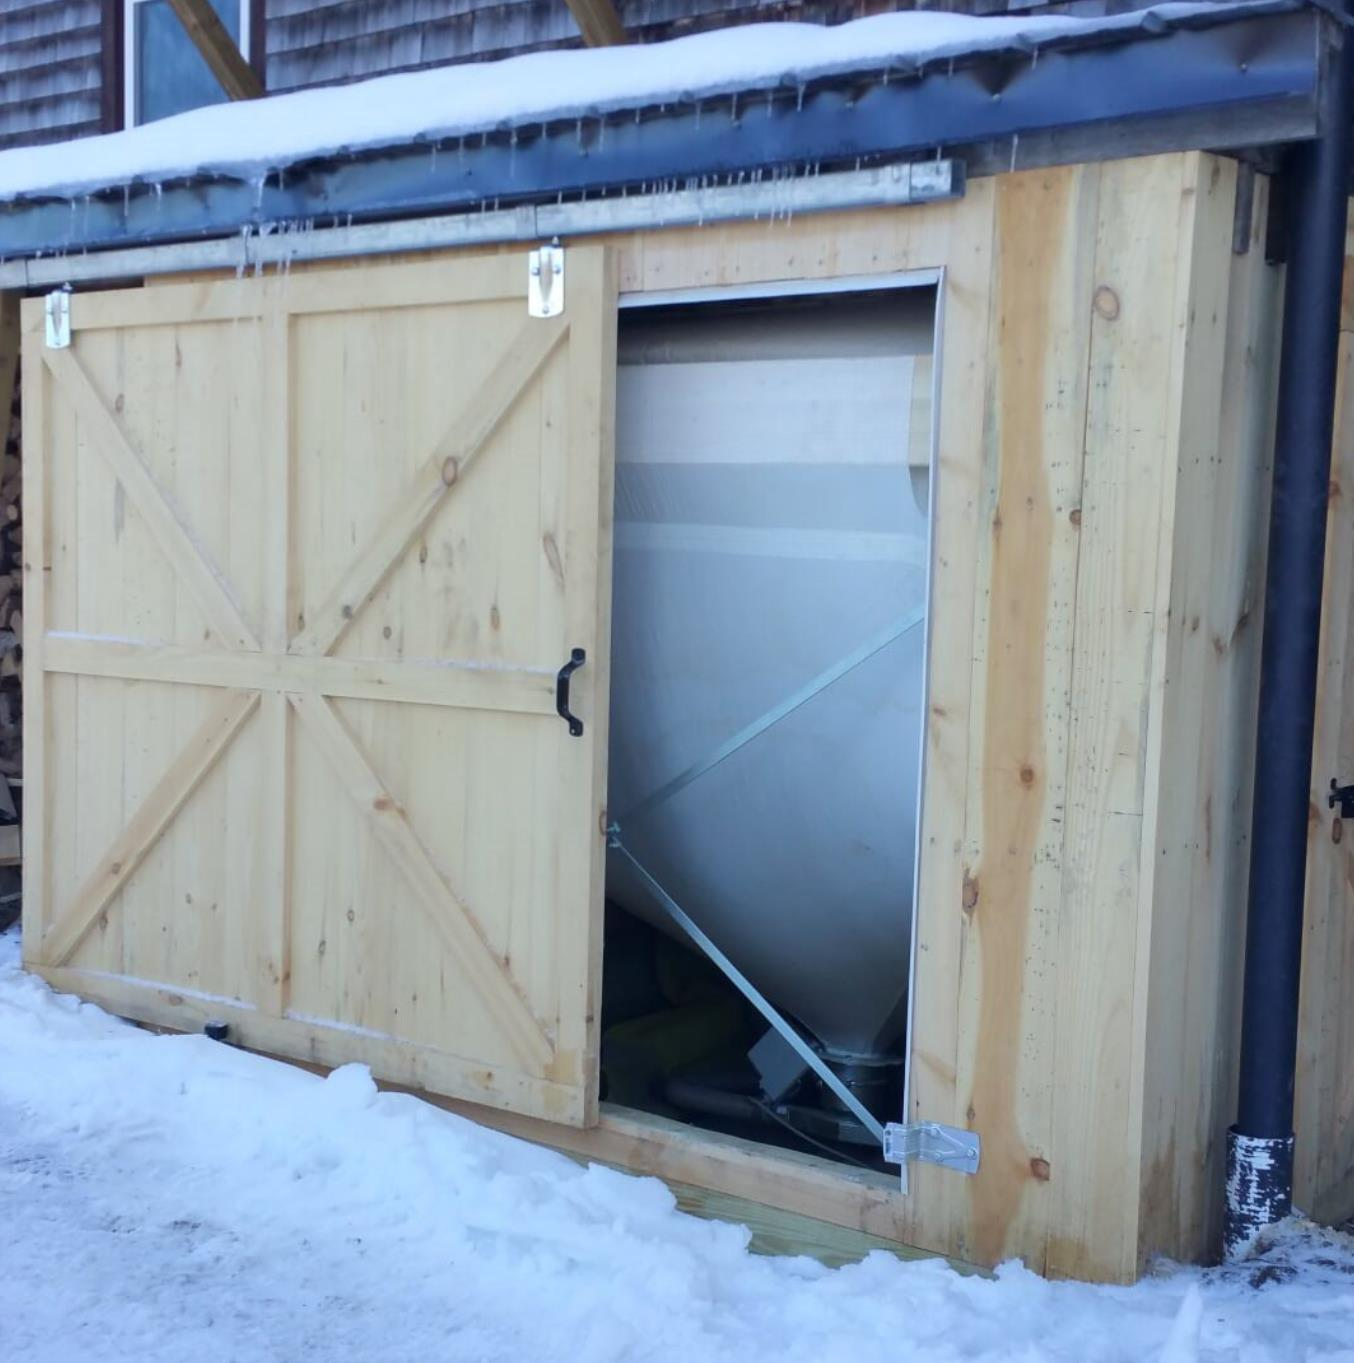 Wood pellets are delivered in bulk by truck to this outdoor pellet-storage bin. Pellets are automatically fed, on-demand, to the boiler that heats this residence. - Energize Vermont